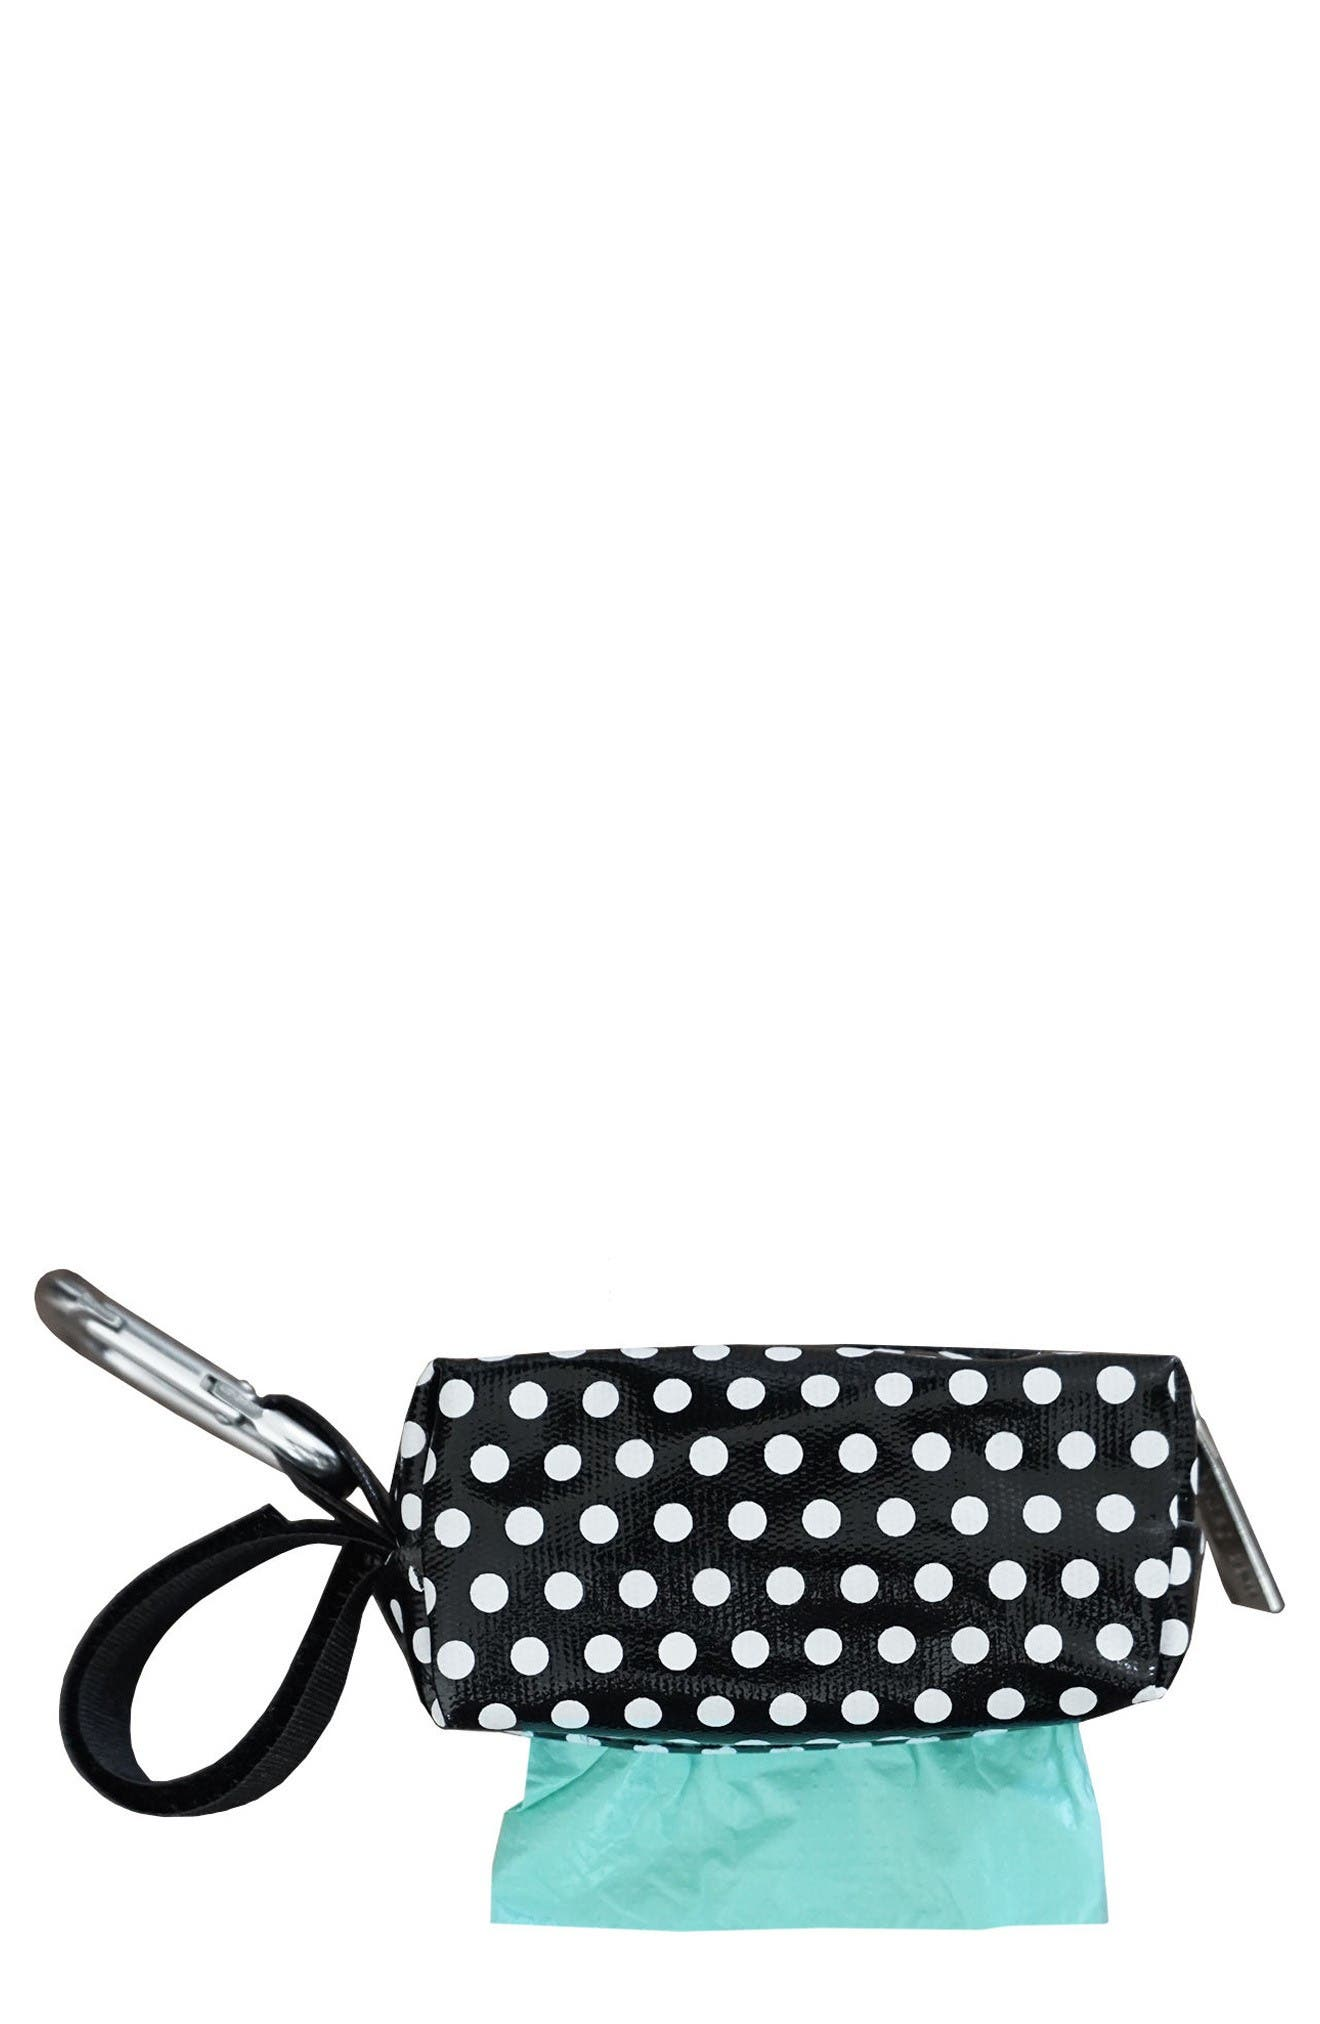 Portable Clip-On Dispenser with Bags,                             Main thumbnail 1, color,                             Black Dots